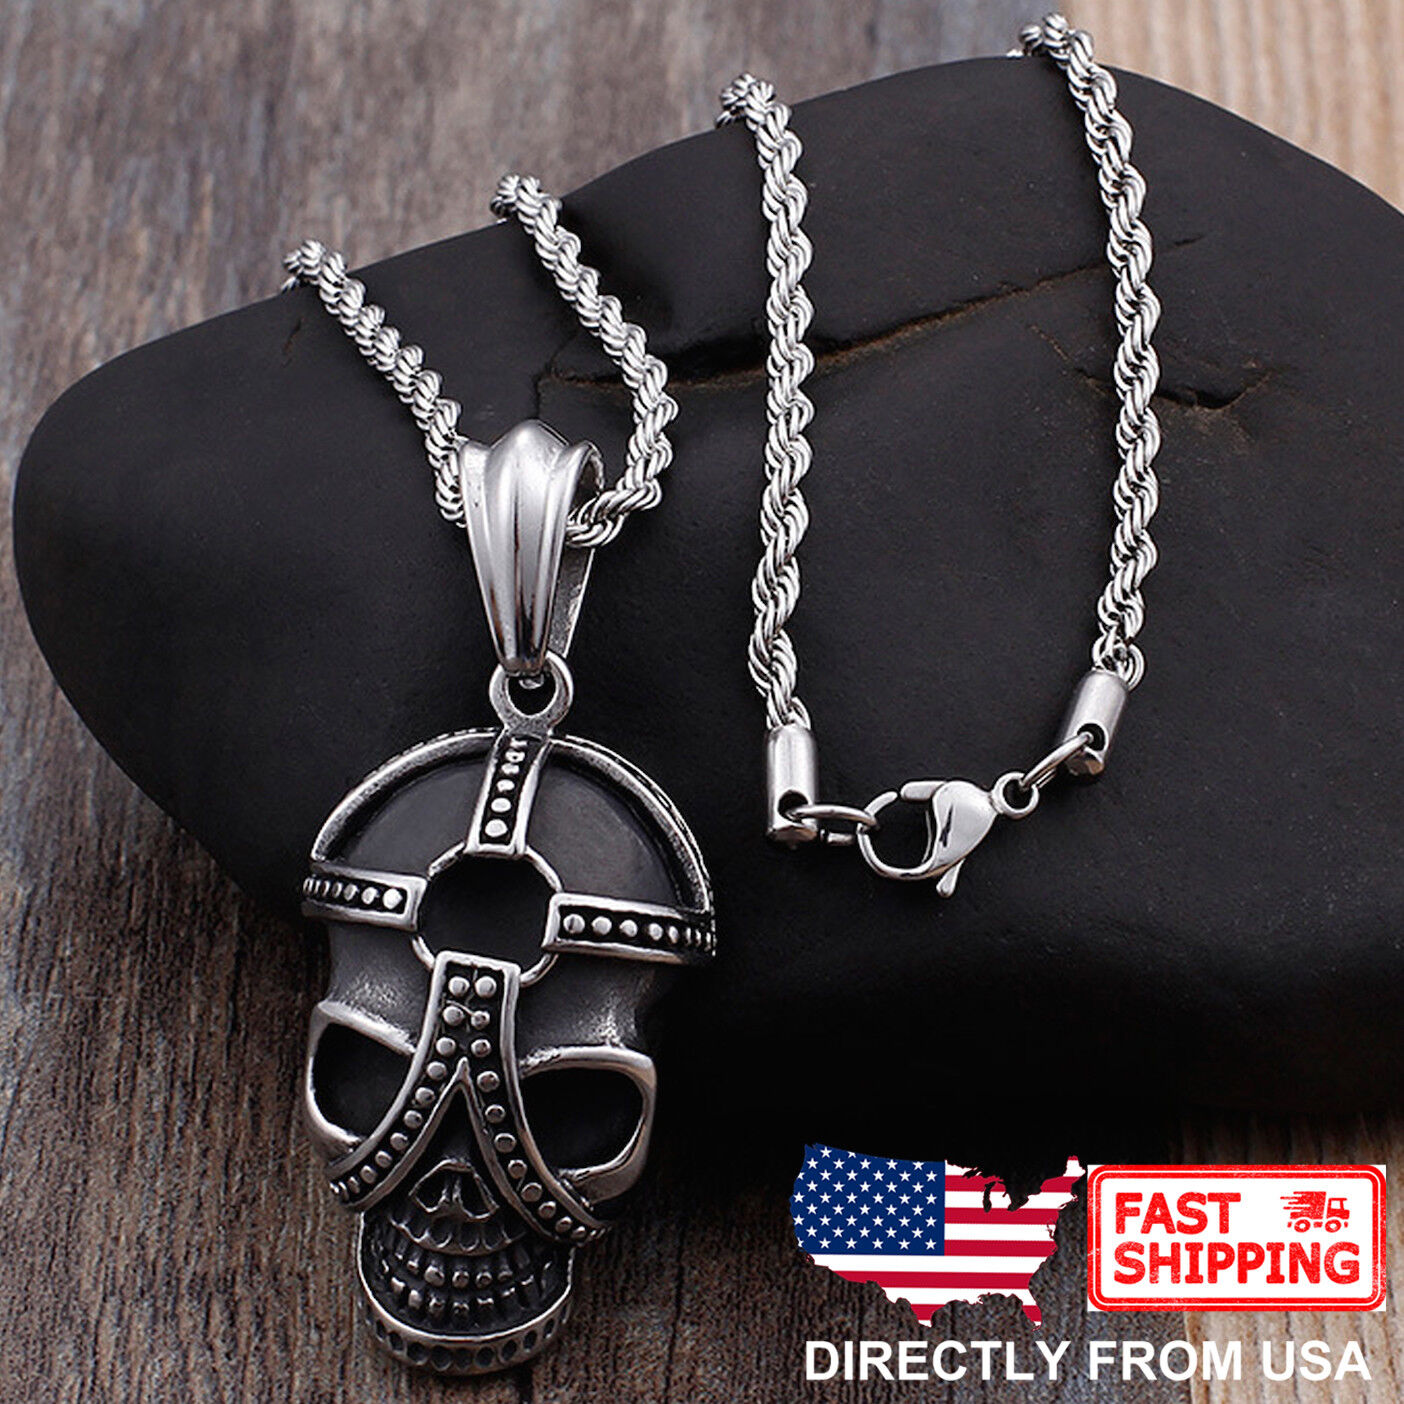 Men's Biker Jewelry, Stainless Steel Gothic Skull Pendant Necklace Chains, Necklaces & Pendants